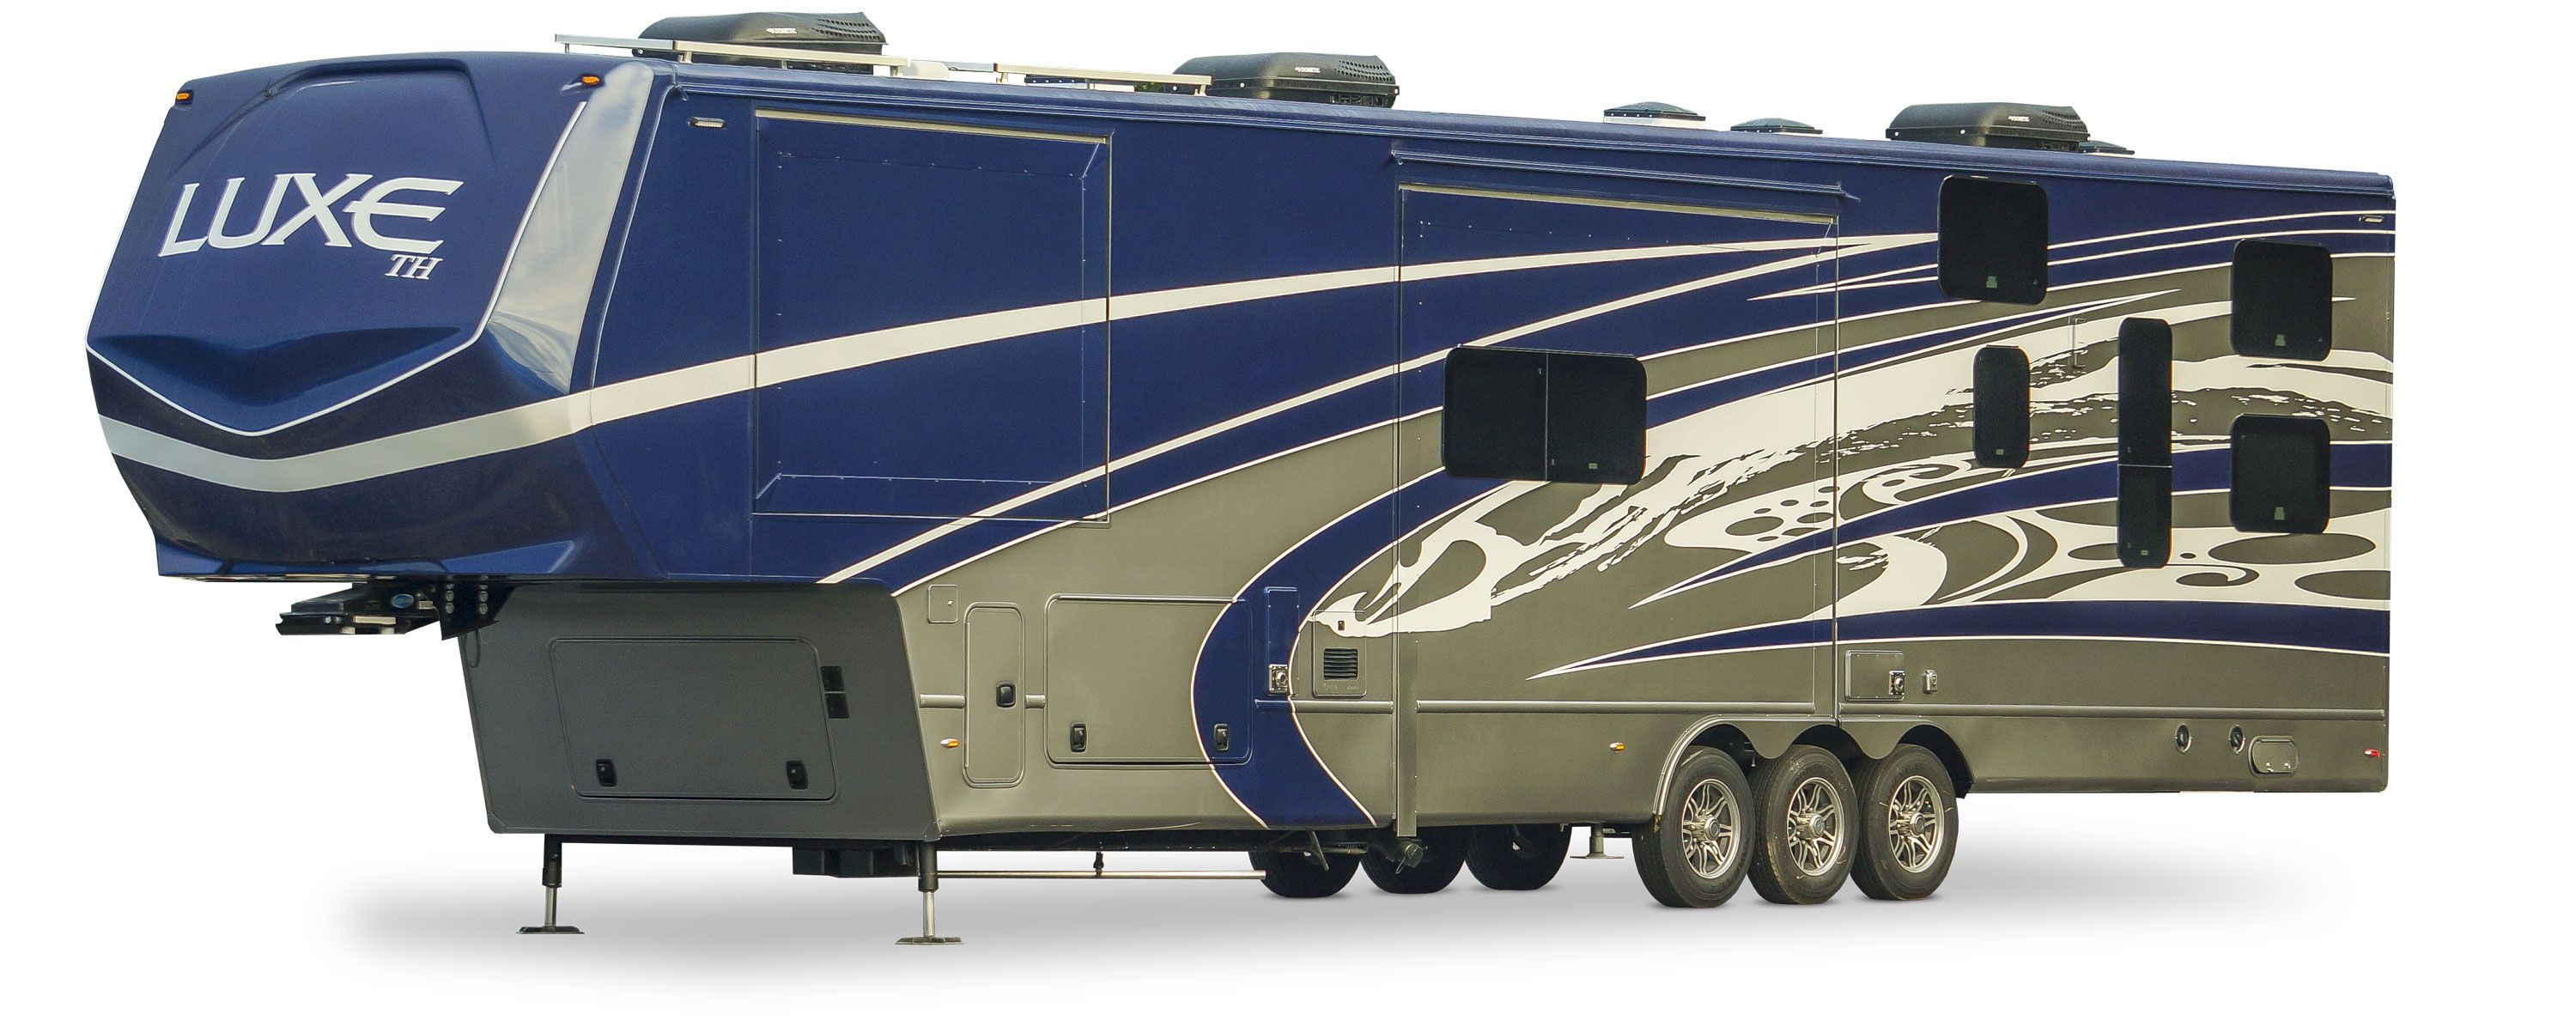 Best Toy Hauler 2020 luxury full time fifth wheel